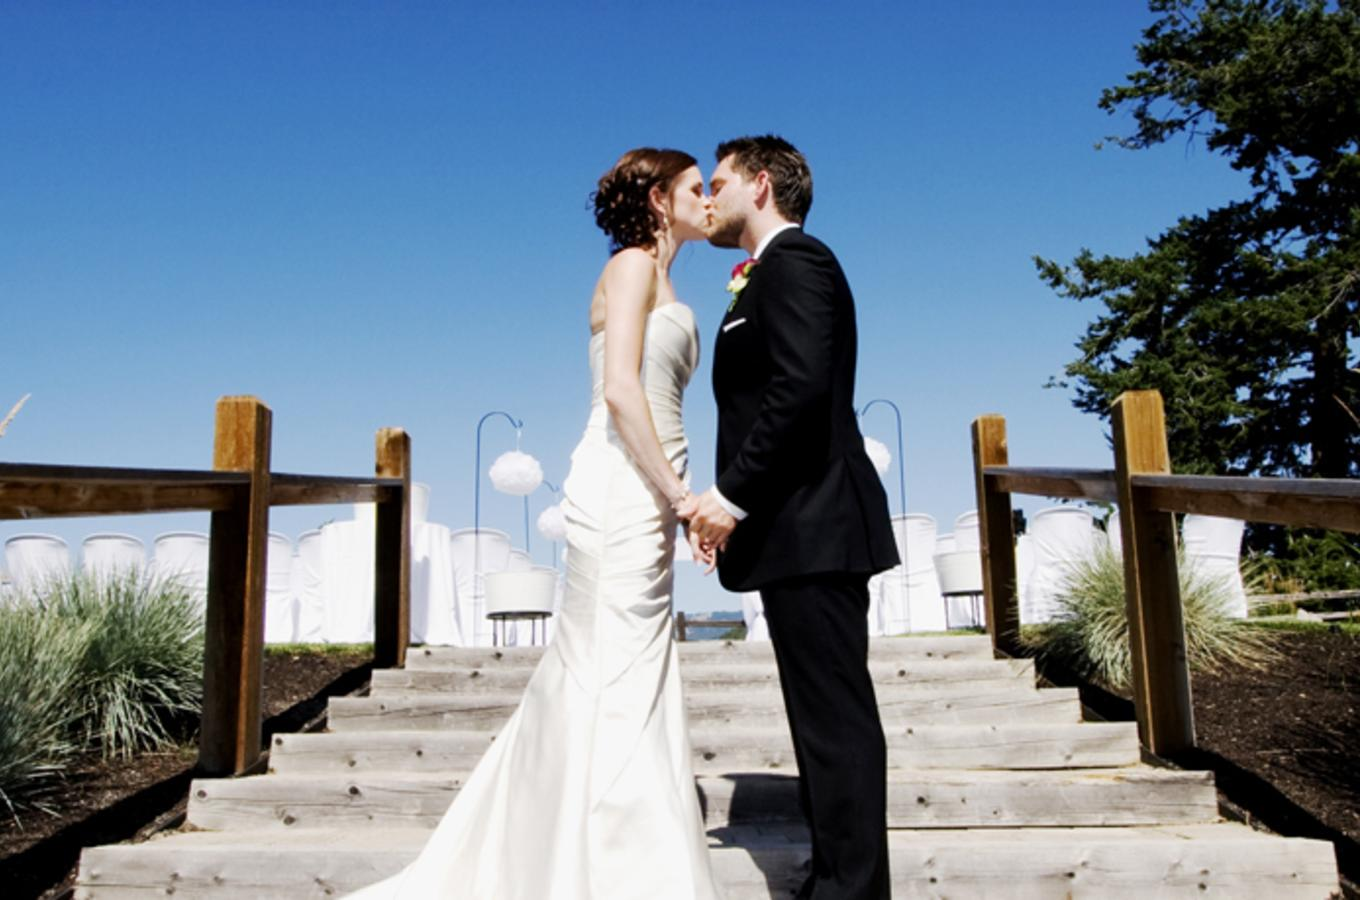 Gallagher's Canyon - Weddings & Events Image 1